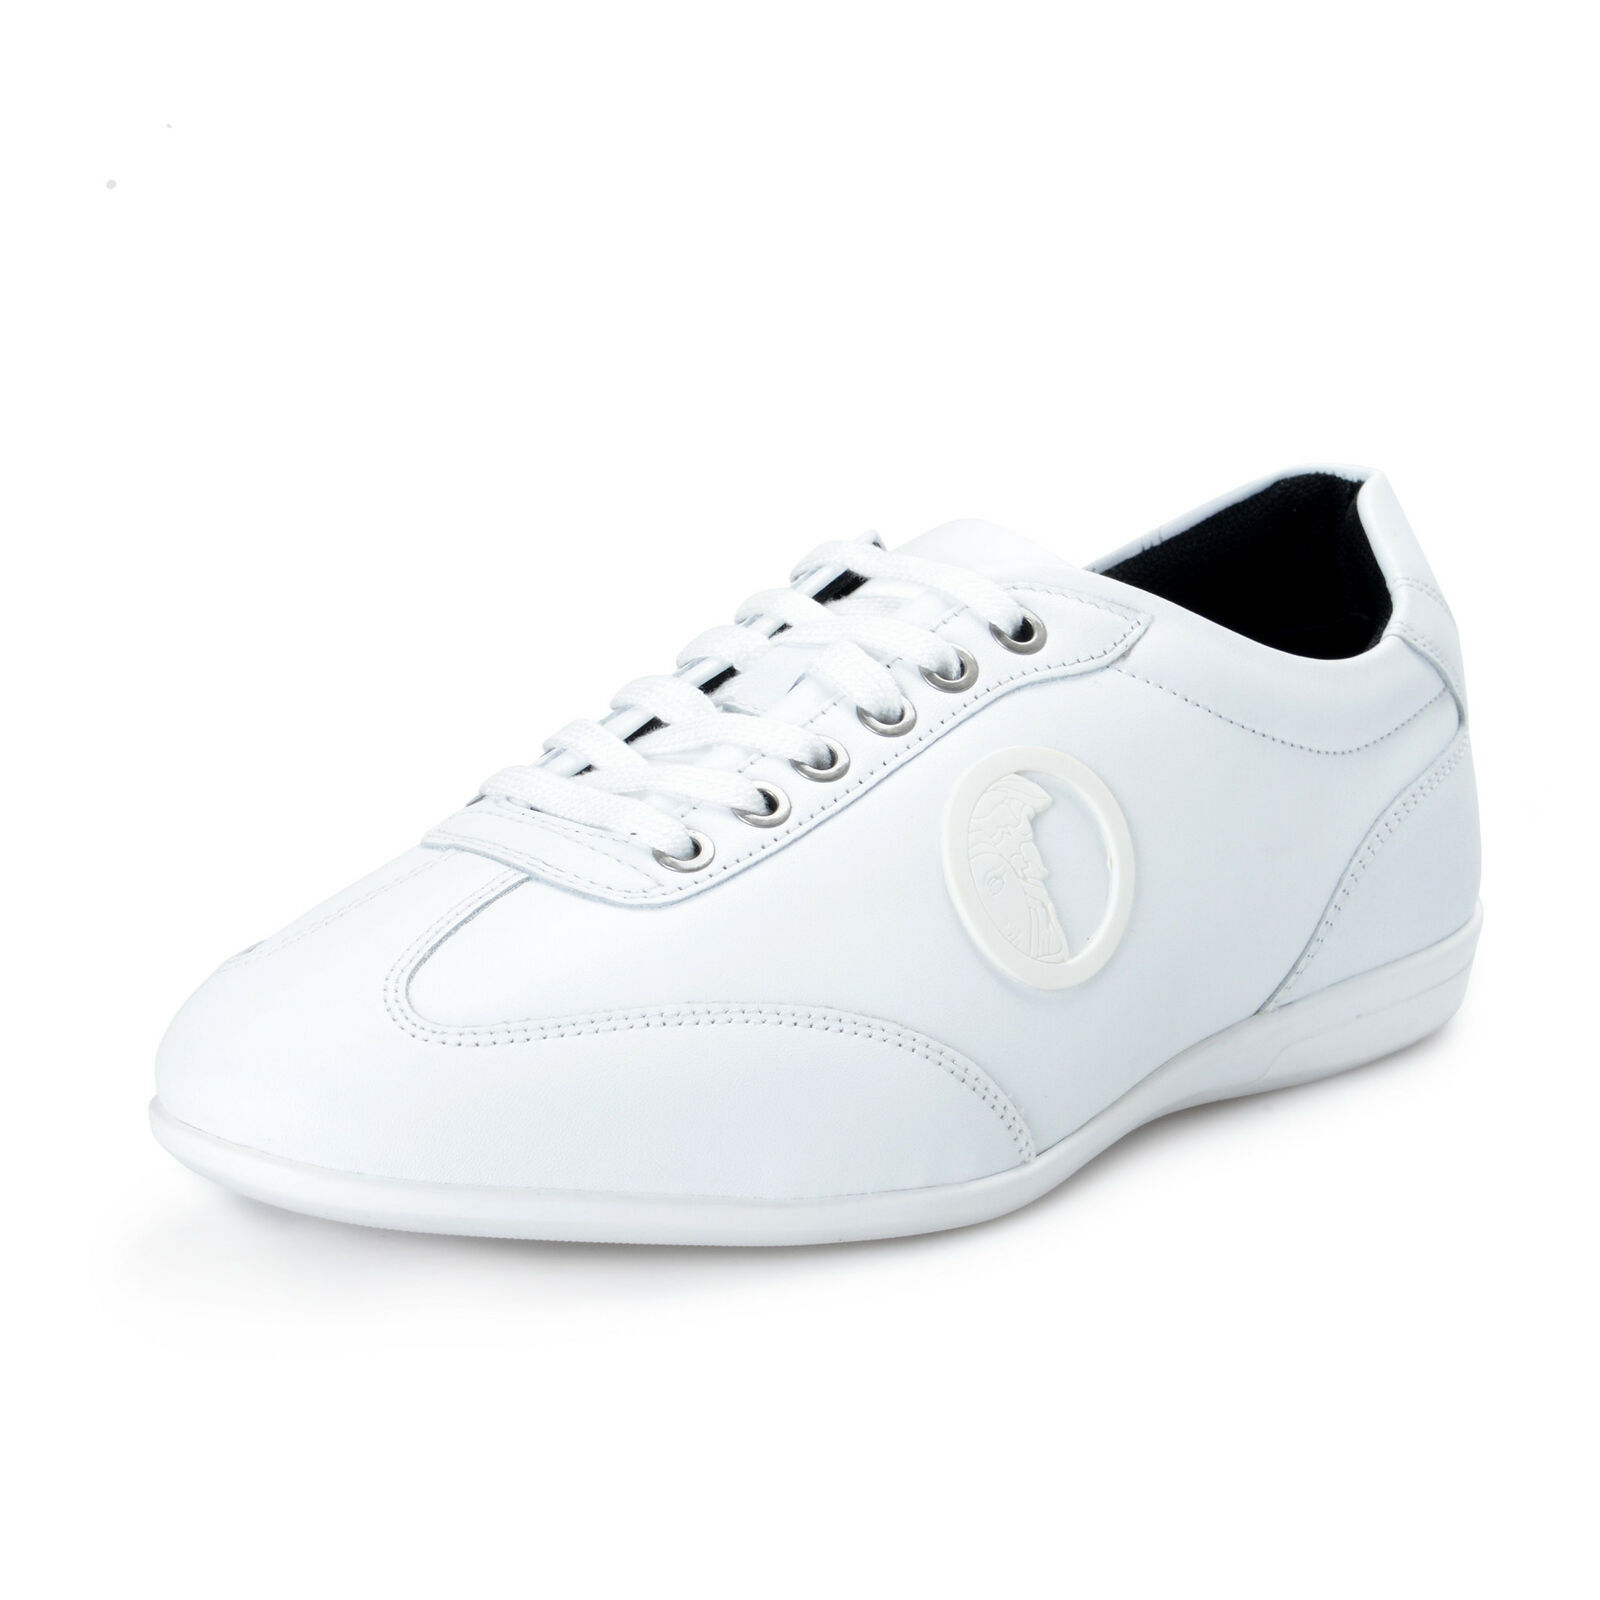 Versace Collection Men's White Leather Fashion Sneakers shoes Sz 7 8 9 10 12